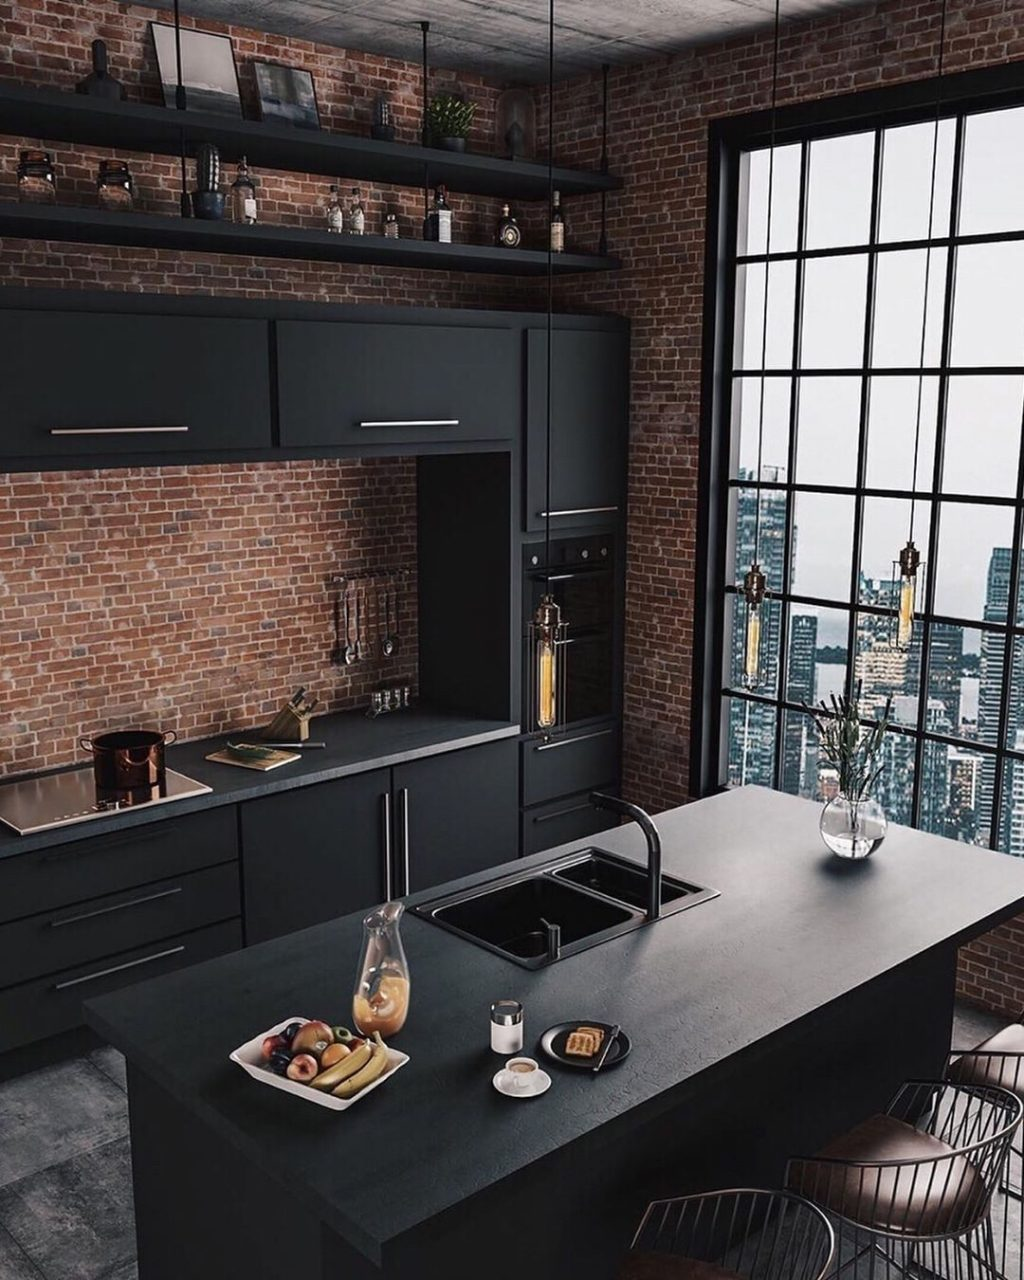 Breathtaking Industrial Style Kitchen In Love With Its Dark Color